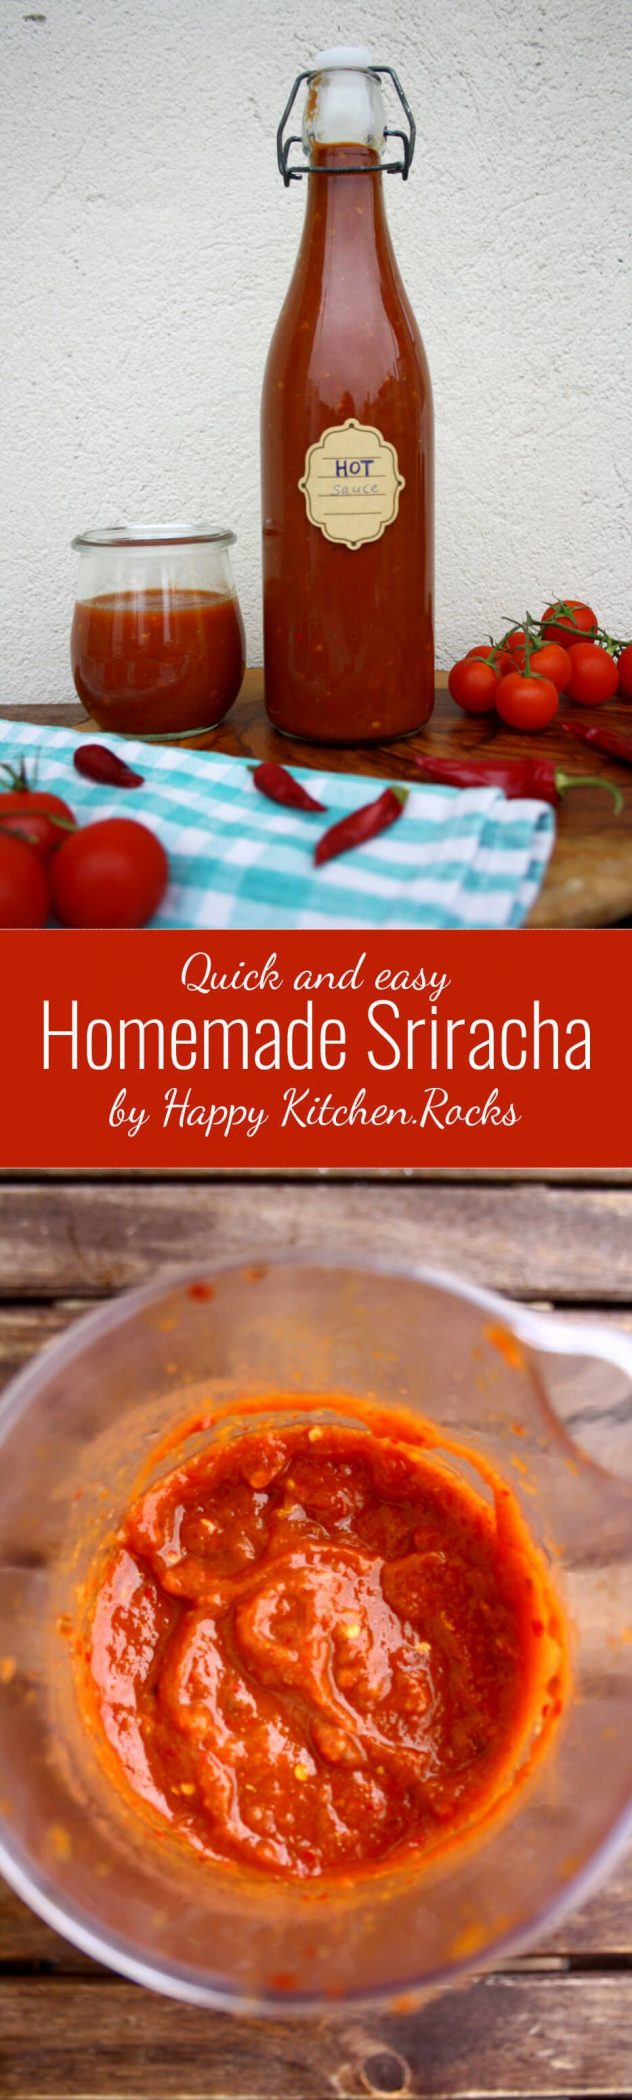 Quick and easy Homemade Sriracha sauce, perfect for any kind of ...